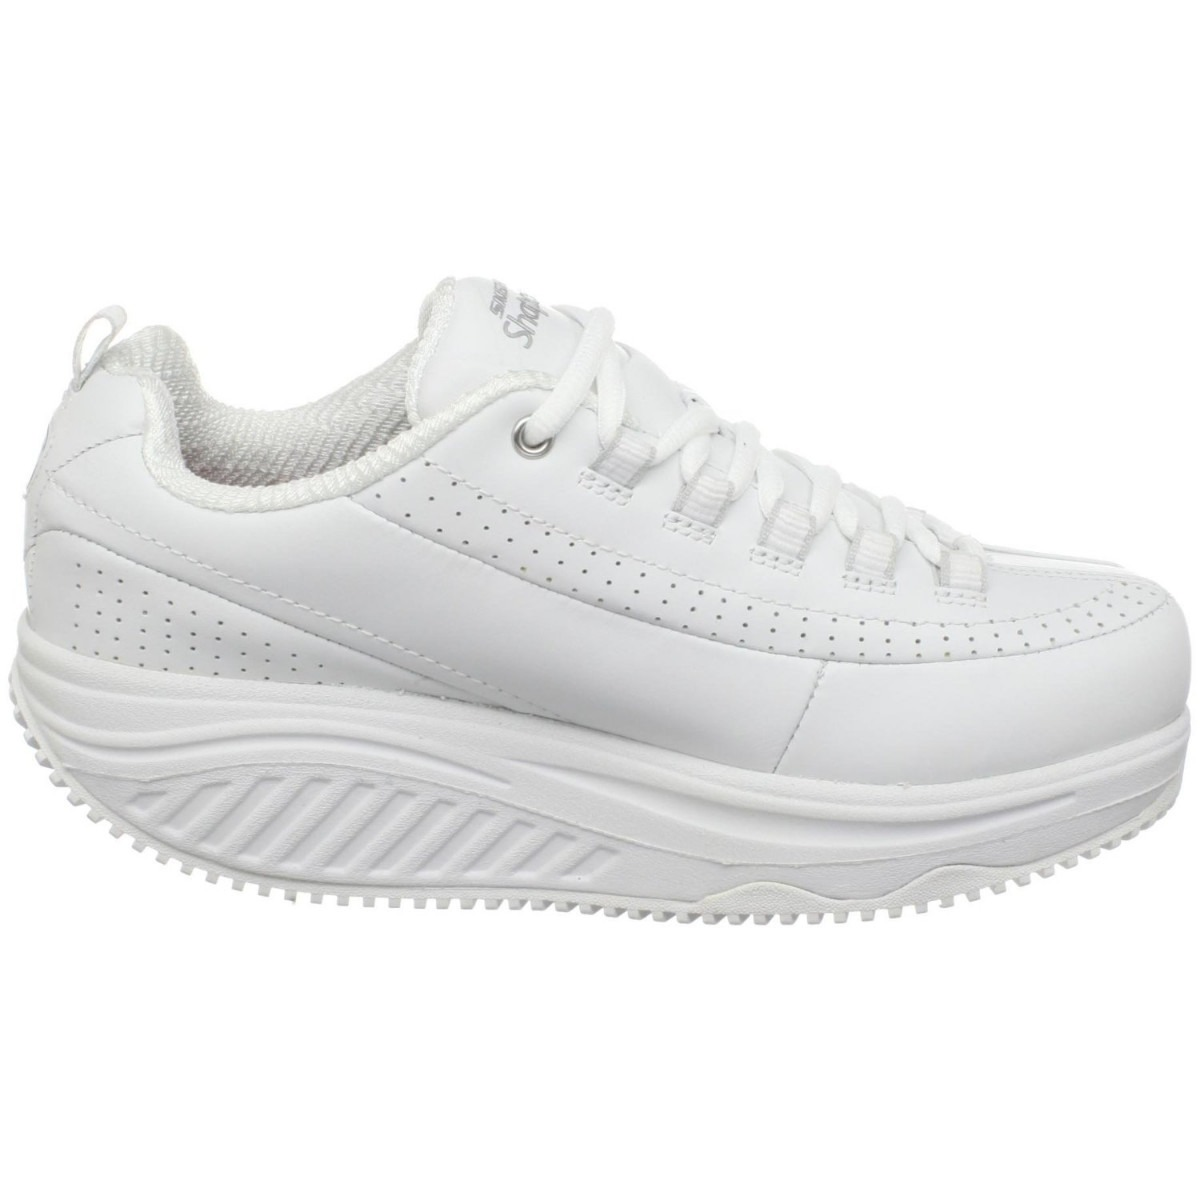 zapatos skechers shape ups dama